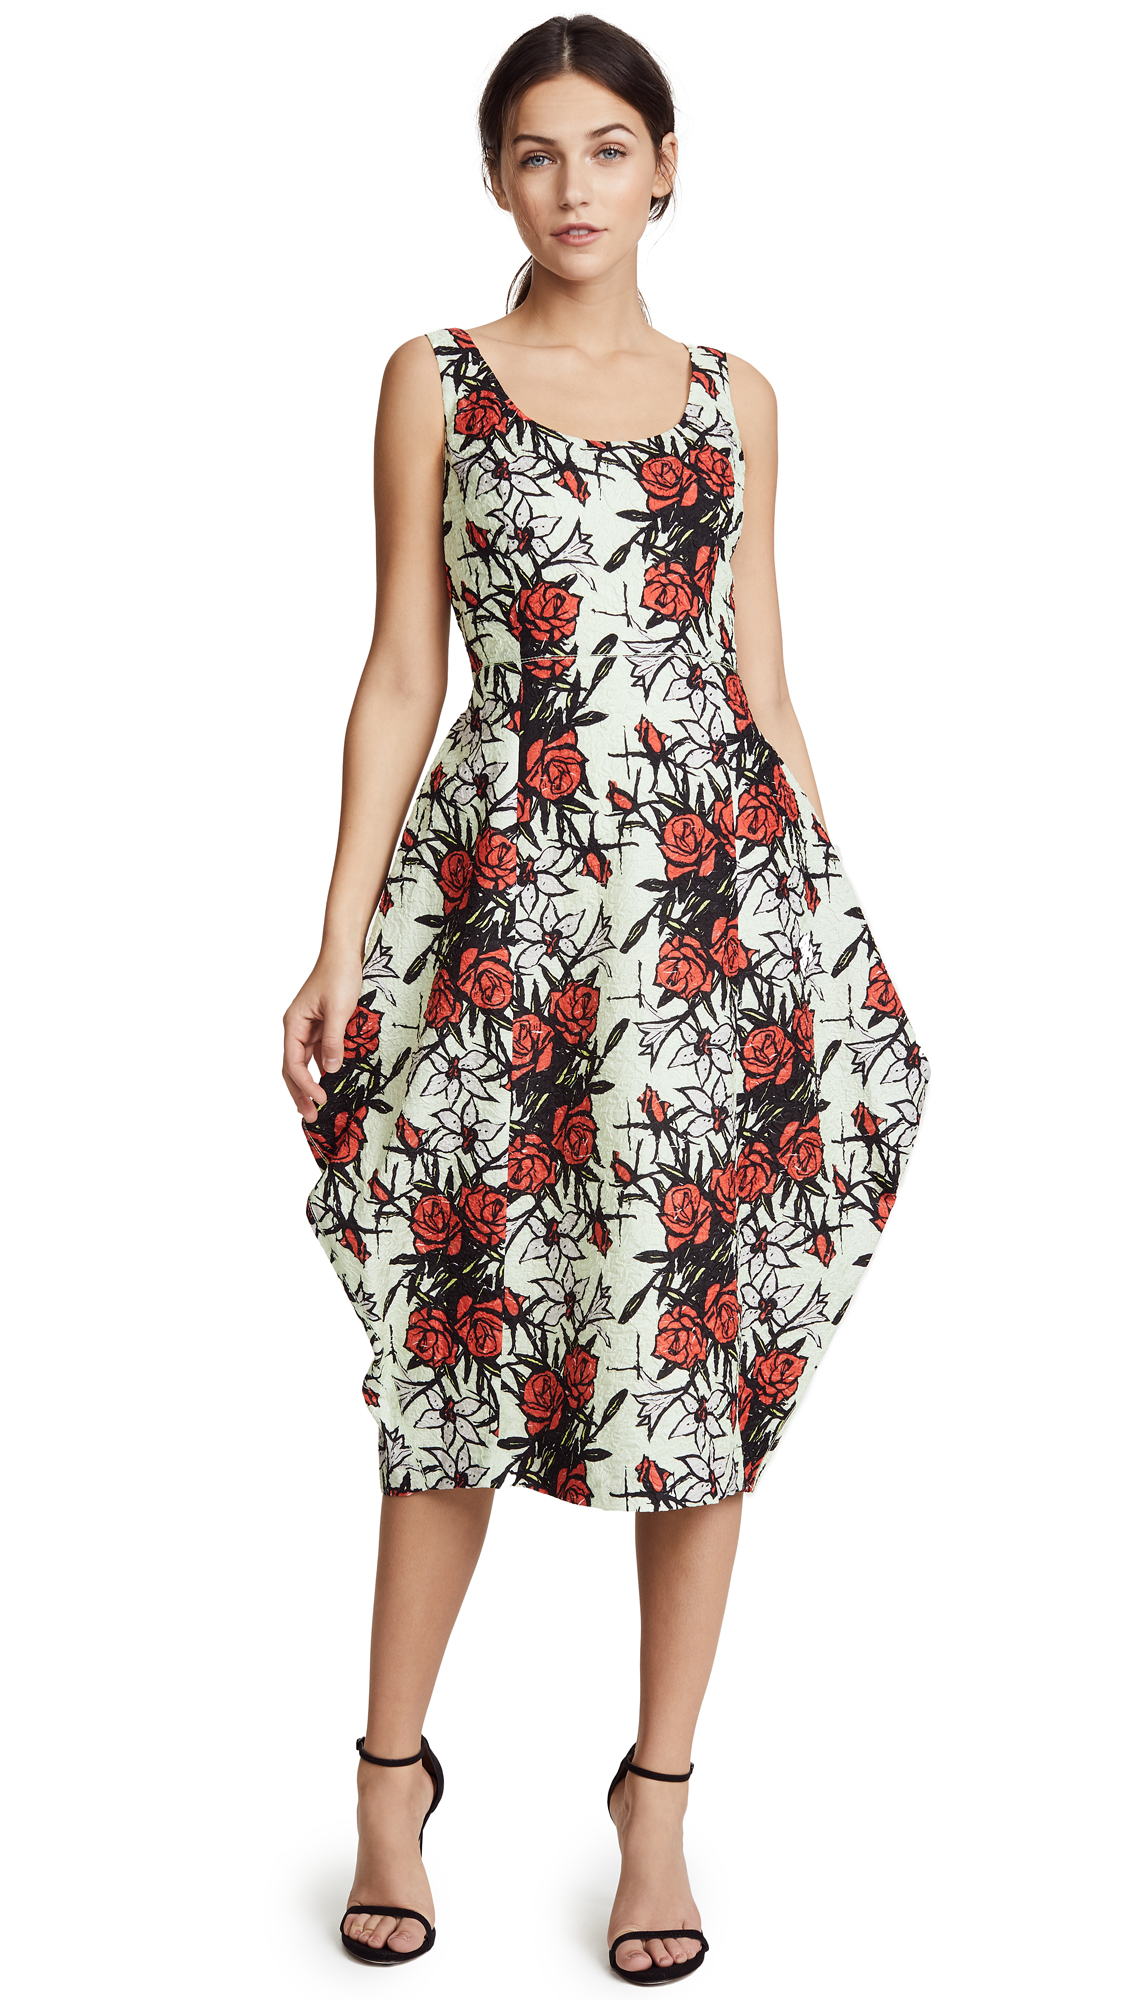 Nina Ricci Flowers Printed Waffle Dress - Celadon/Red